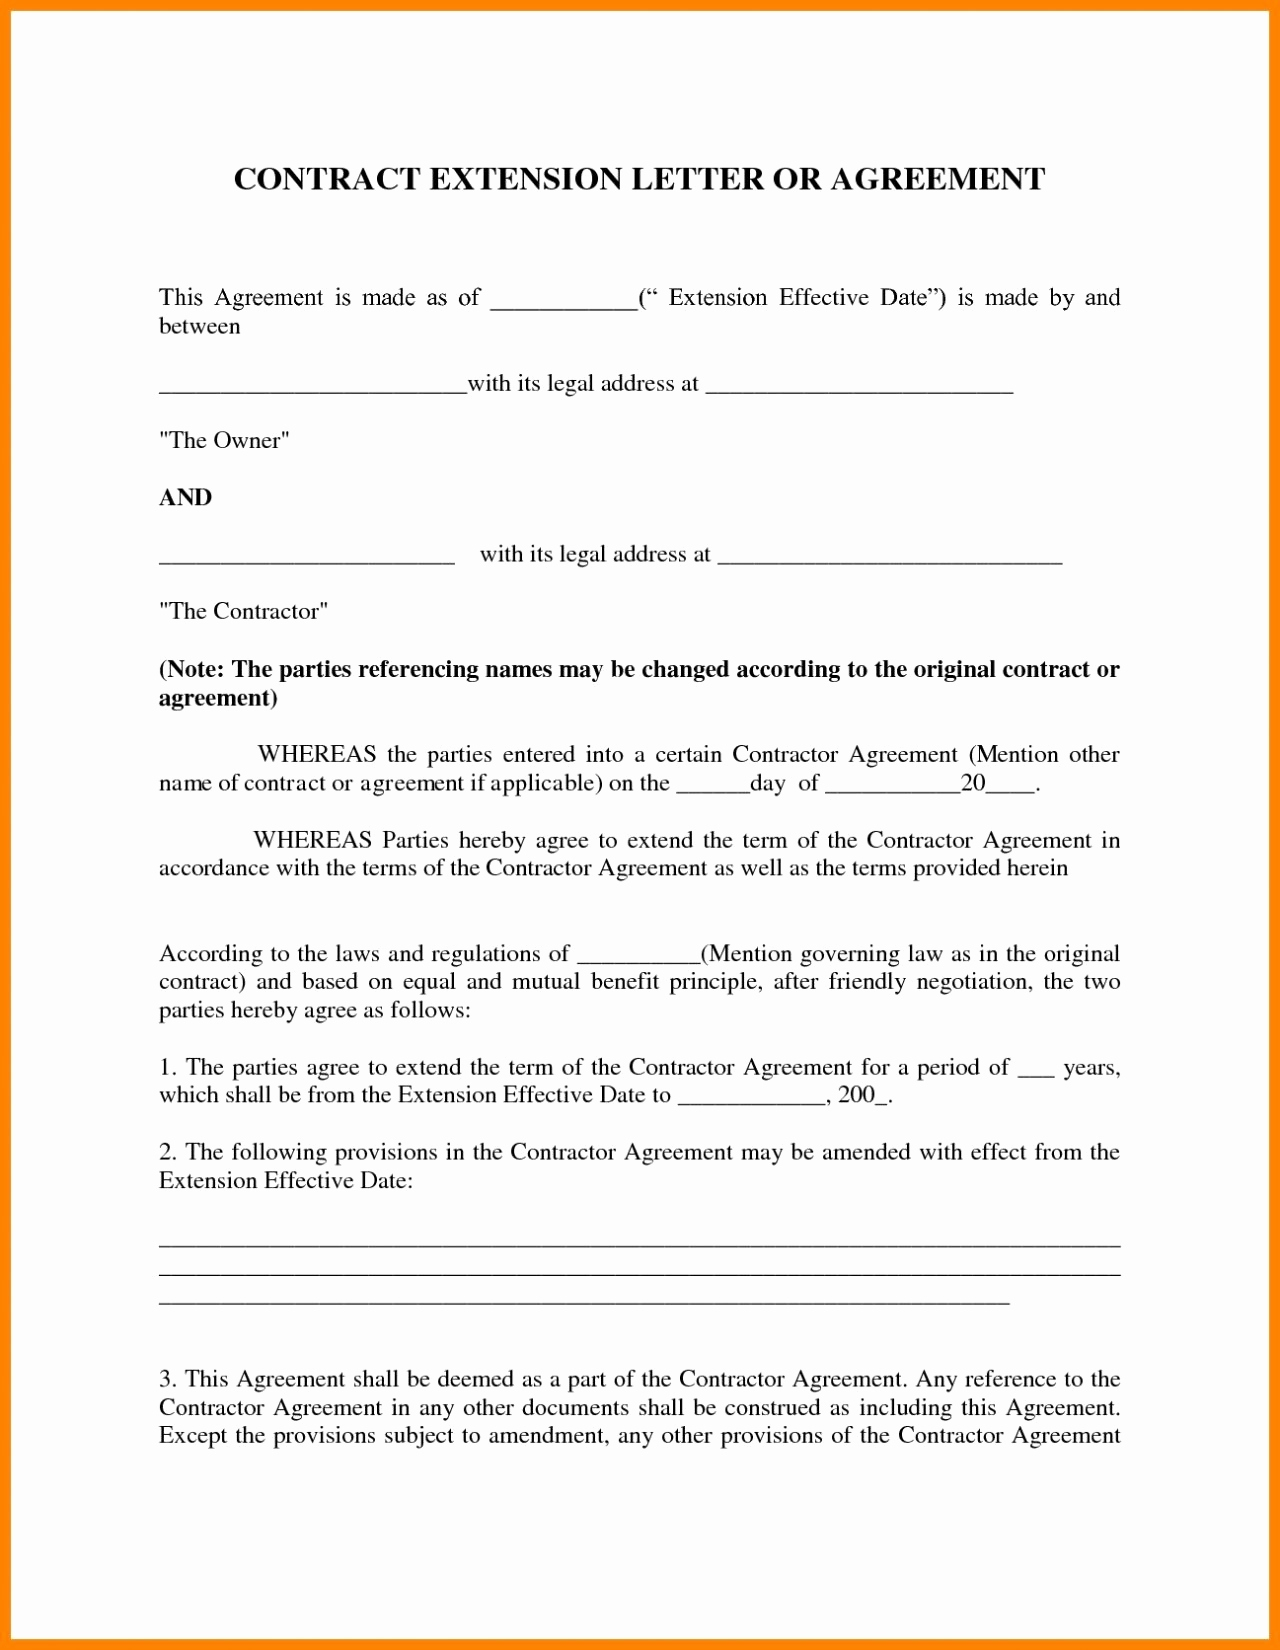 Letter Of Agreement Template Between Two Parties - Renewal Lease Agreement Template 19 Partnership Agreement California